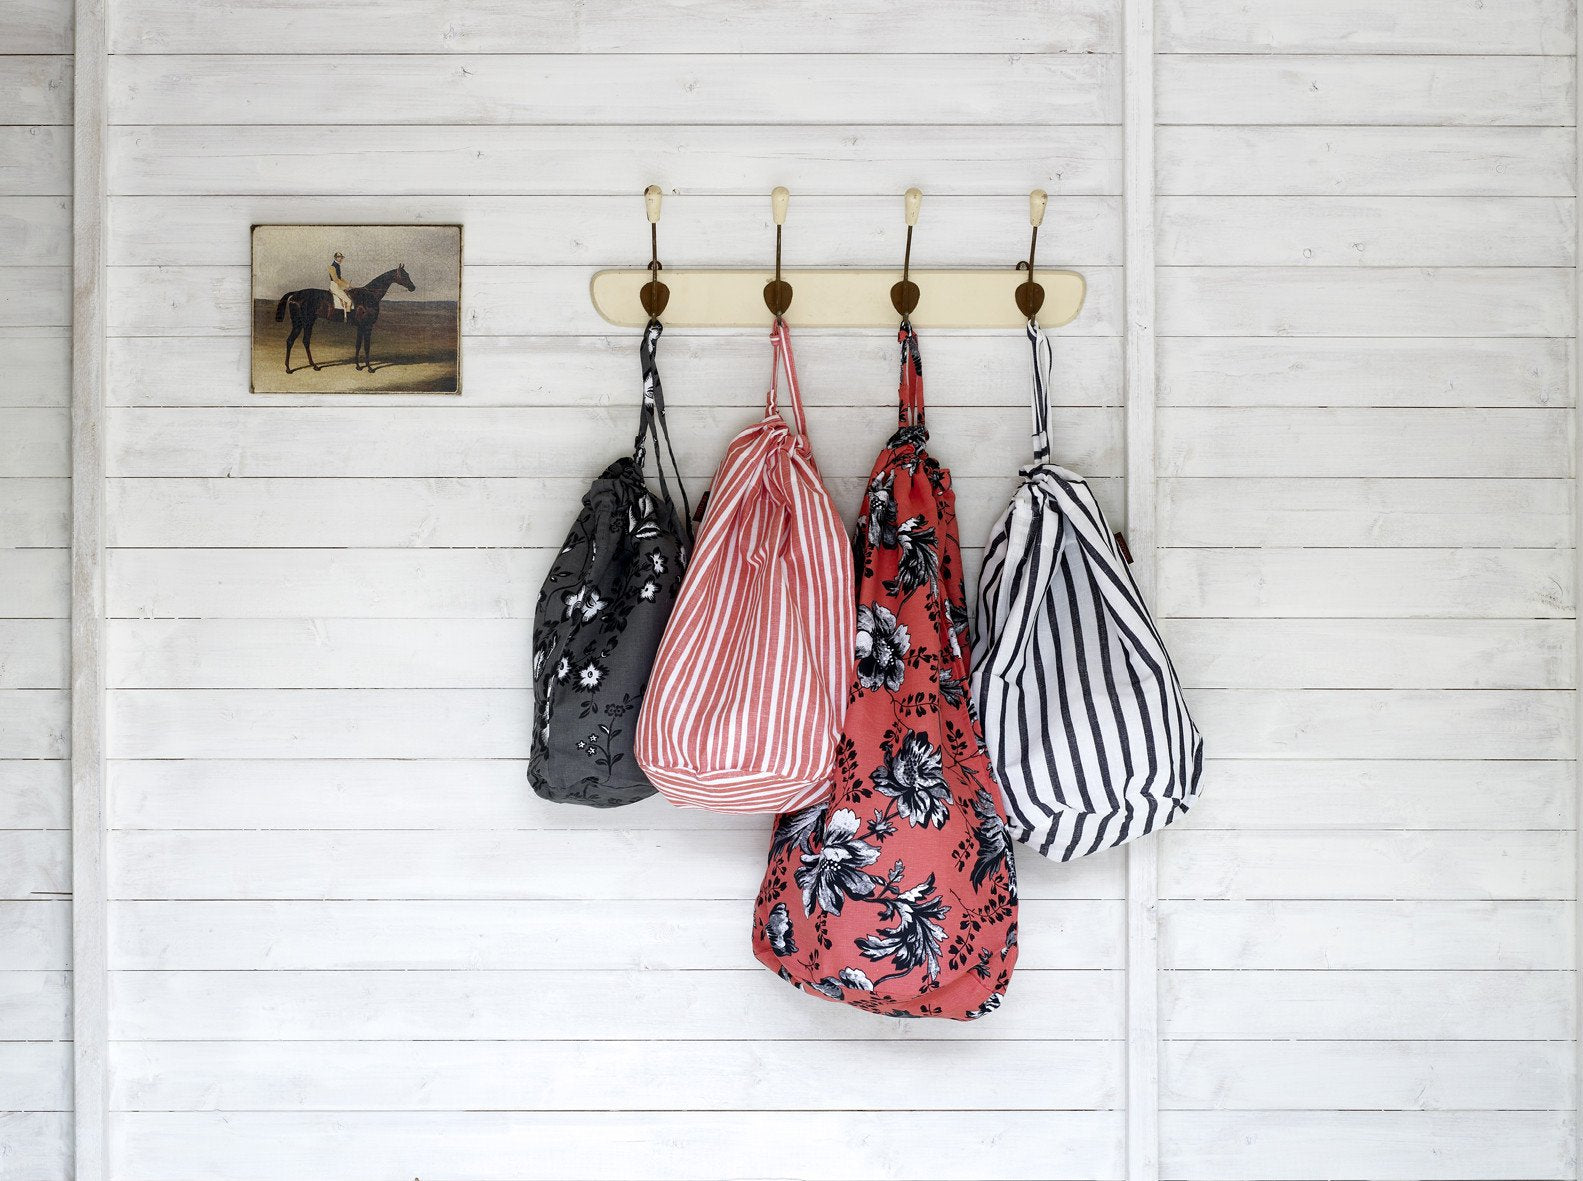 Cotton Linen Laundry, storage and kit bags in stripes and patterns. Available in 3 sizes Ships from Canada worldwide including the USA